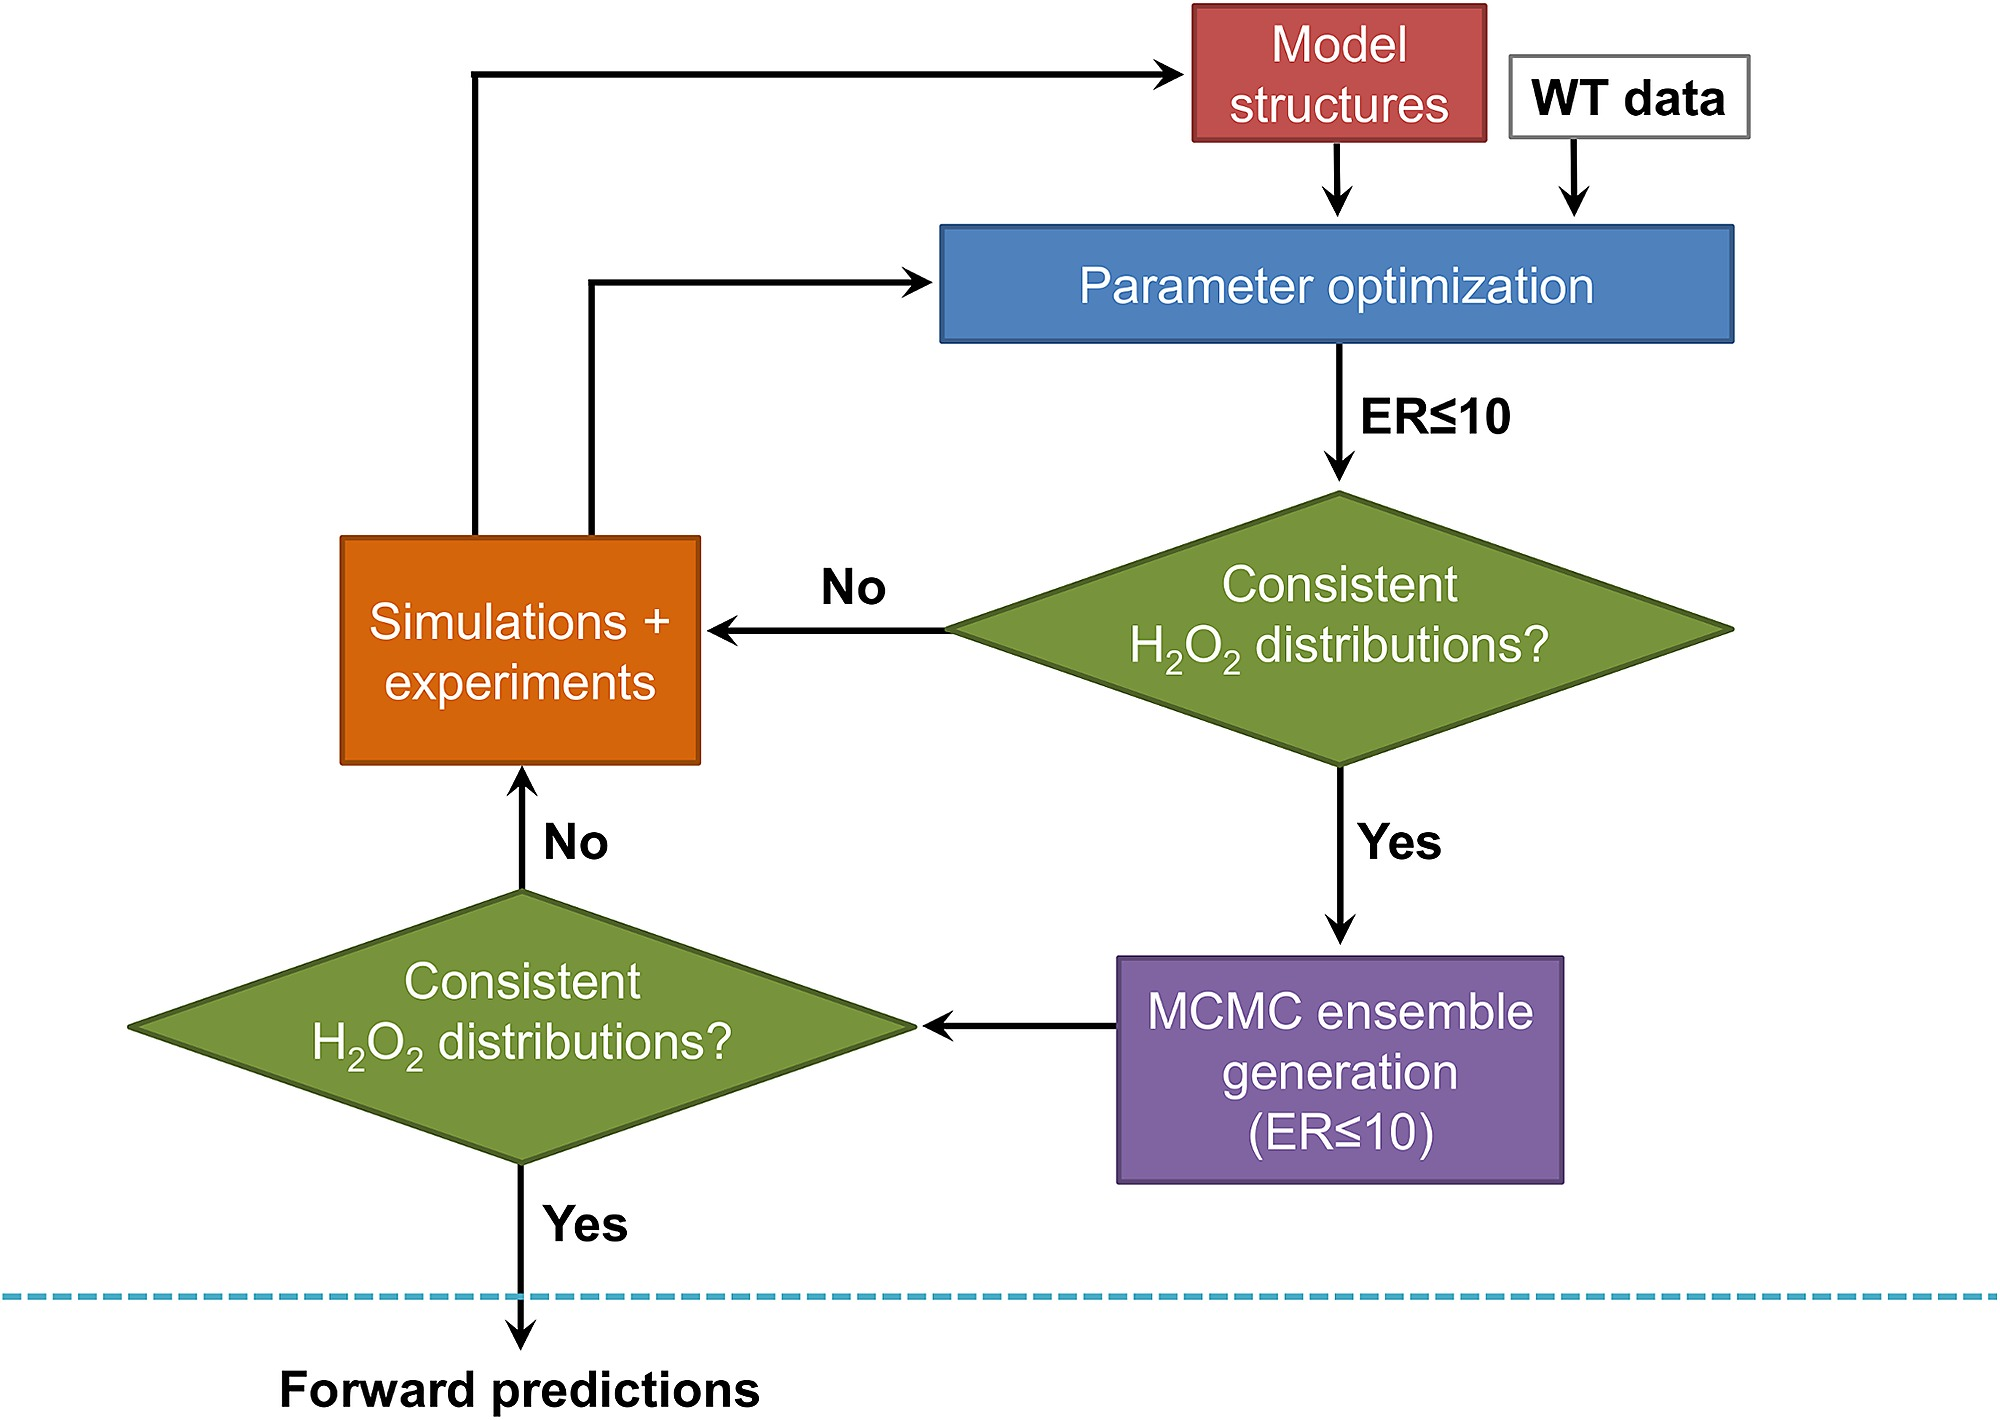 Systematic approach to construct a kinetic model of H2O2 metabolism